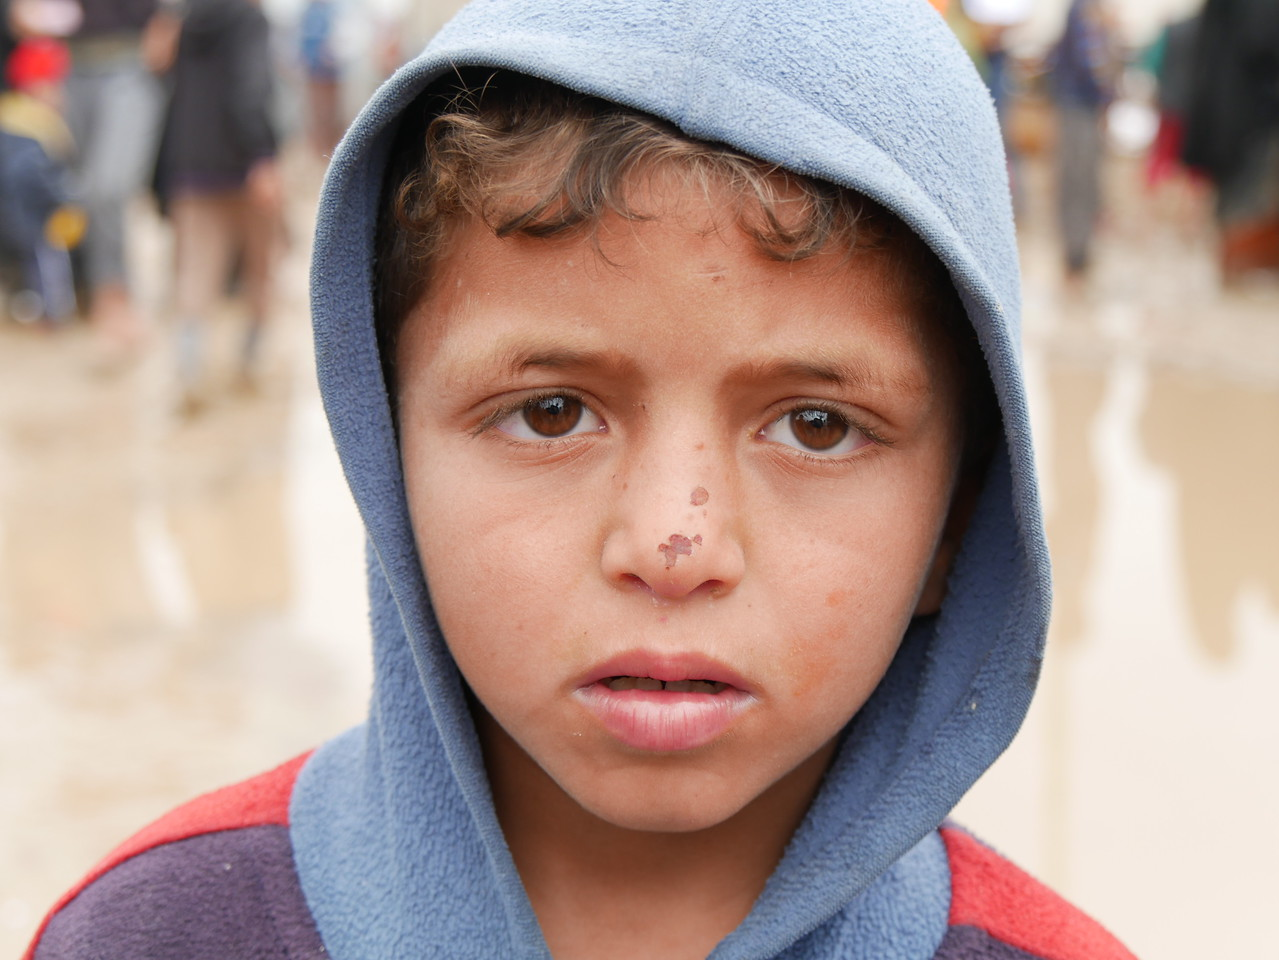 """Mohemed Sabah (6) originally from Mosul, has been displaced to Hamam al-Alil two weeks ago. """"I want education, safety, and joy for my children,"""" Mohemed's mother says while waiting in the queue to get aid """"I am thrilled that Mohemed is registered in school, he will go back to school again, I really hope he will finish school, and I want him to be a journalist to help people in the future,"""" she says.   Date: 16 March 2017 Text: Sarhang Sherwany Photo: Alan Jalal"""